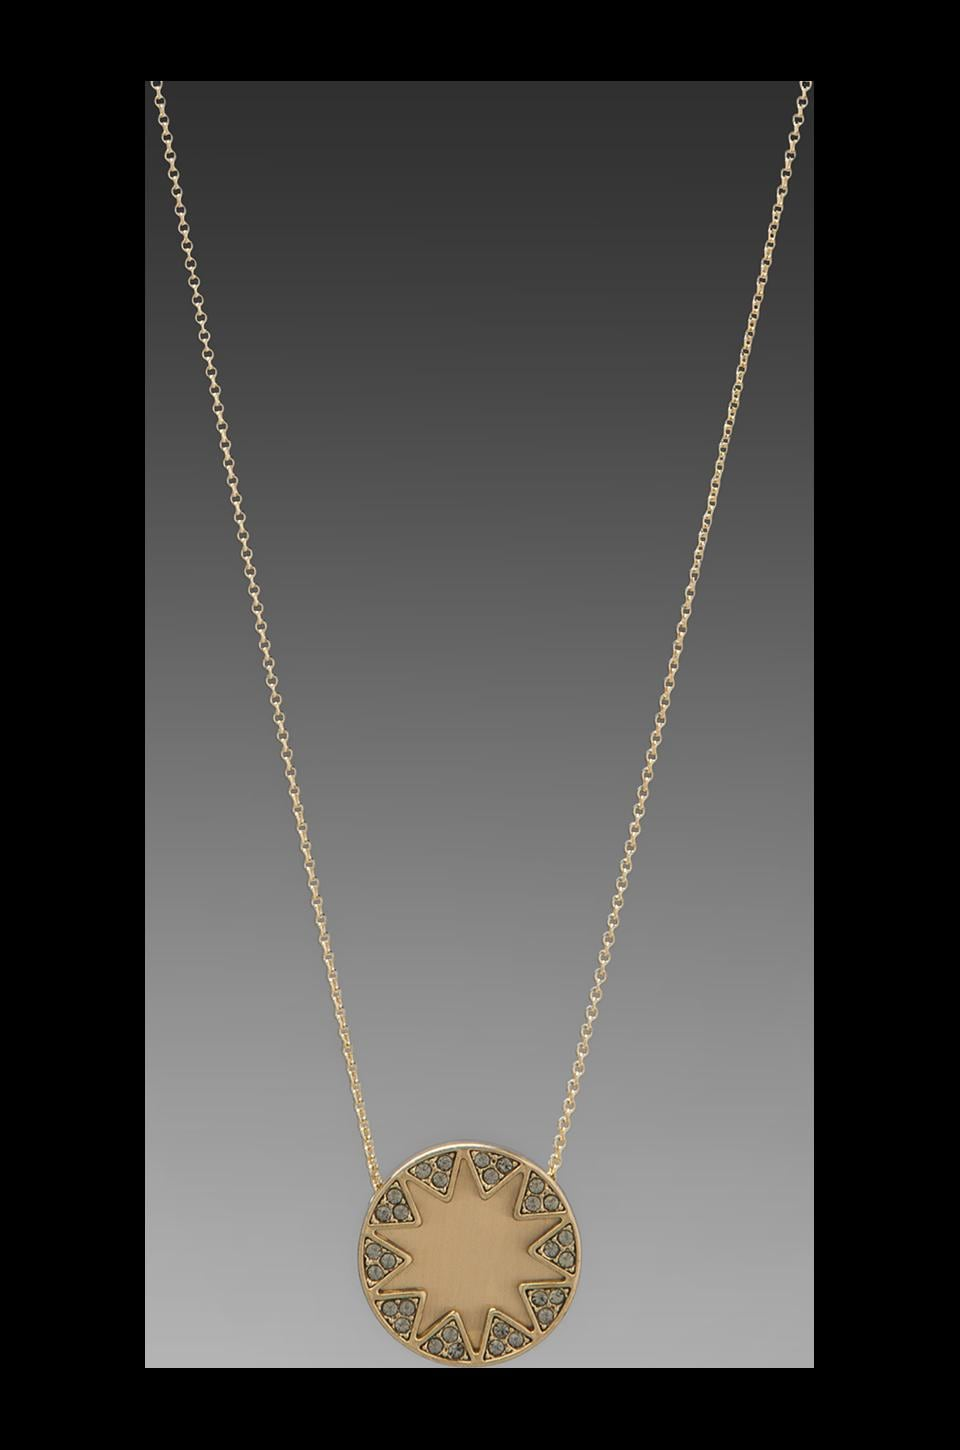 House of Harlow Earth Metal Sunburst Station Necklace in Gold/Pave